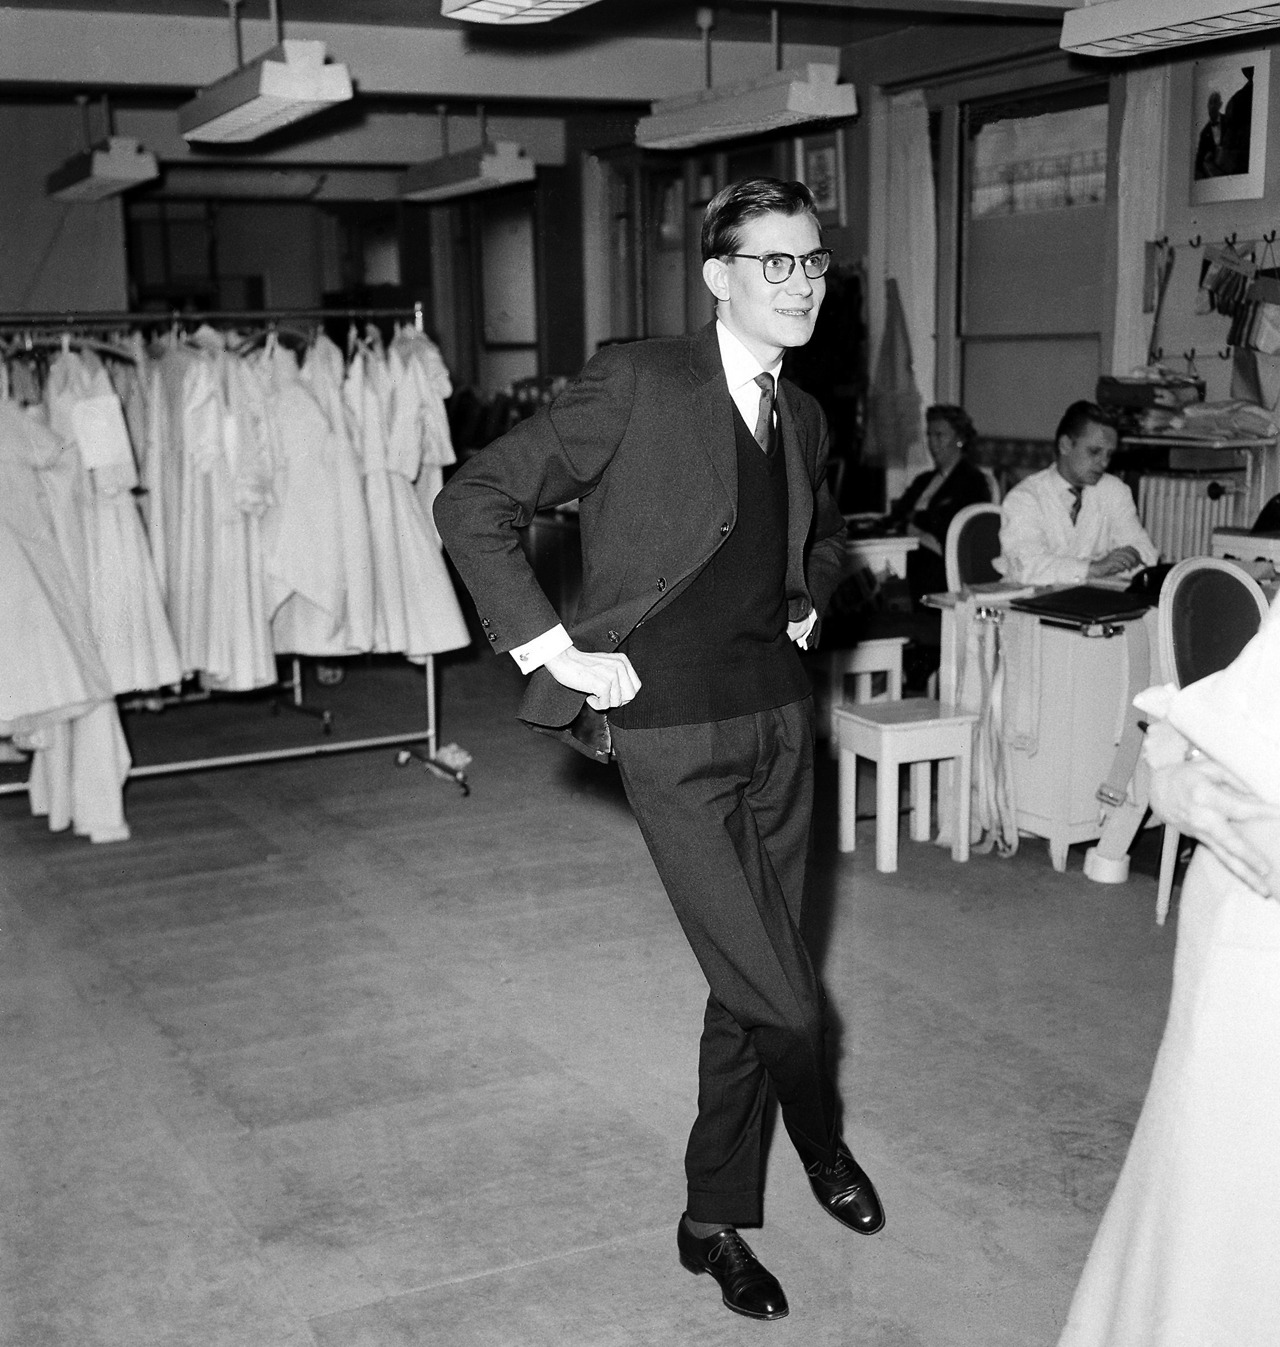 The Man Who Loved Sweater Vests With Suits 1. Yves Saint Laurent, 1958.